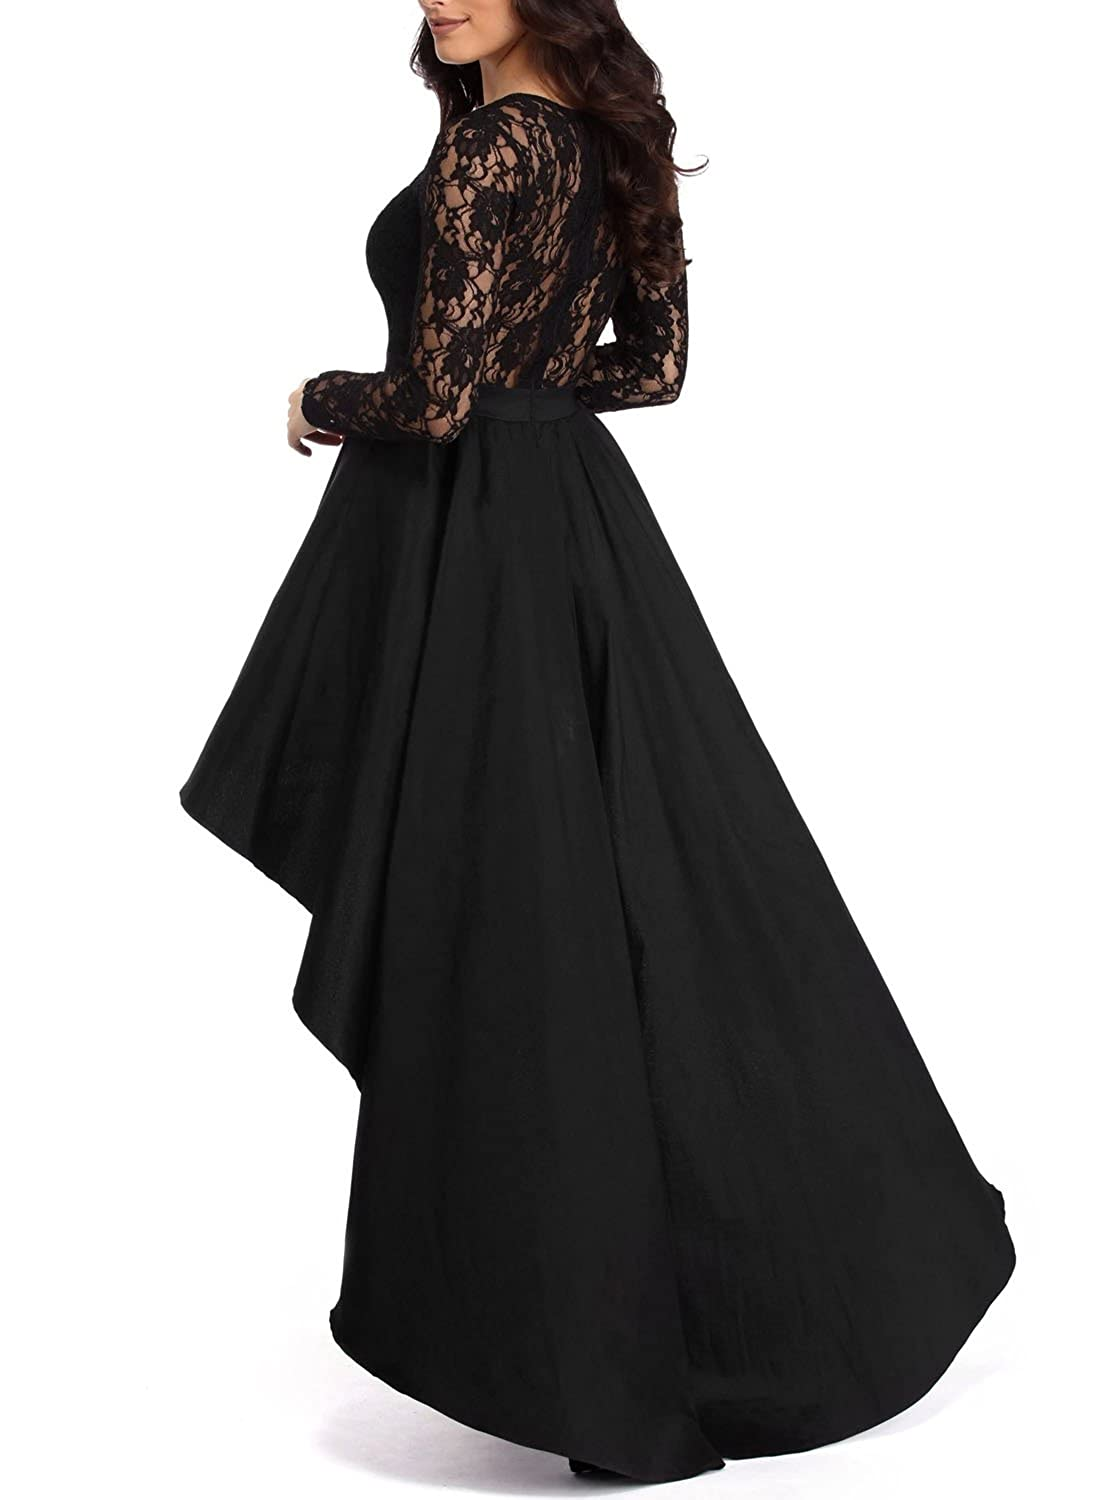 cb921c6ffe Elapsy Womens Long Sleeve Lace High Low Satin Prom Evening Dress Cocktail  Party Gowns at Amazon Women s Clothing store